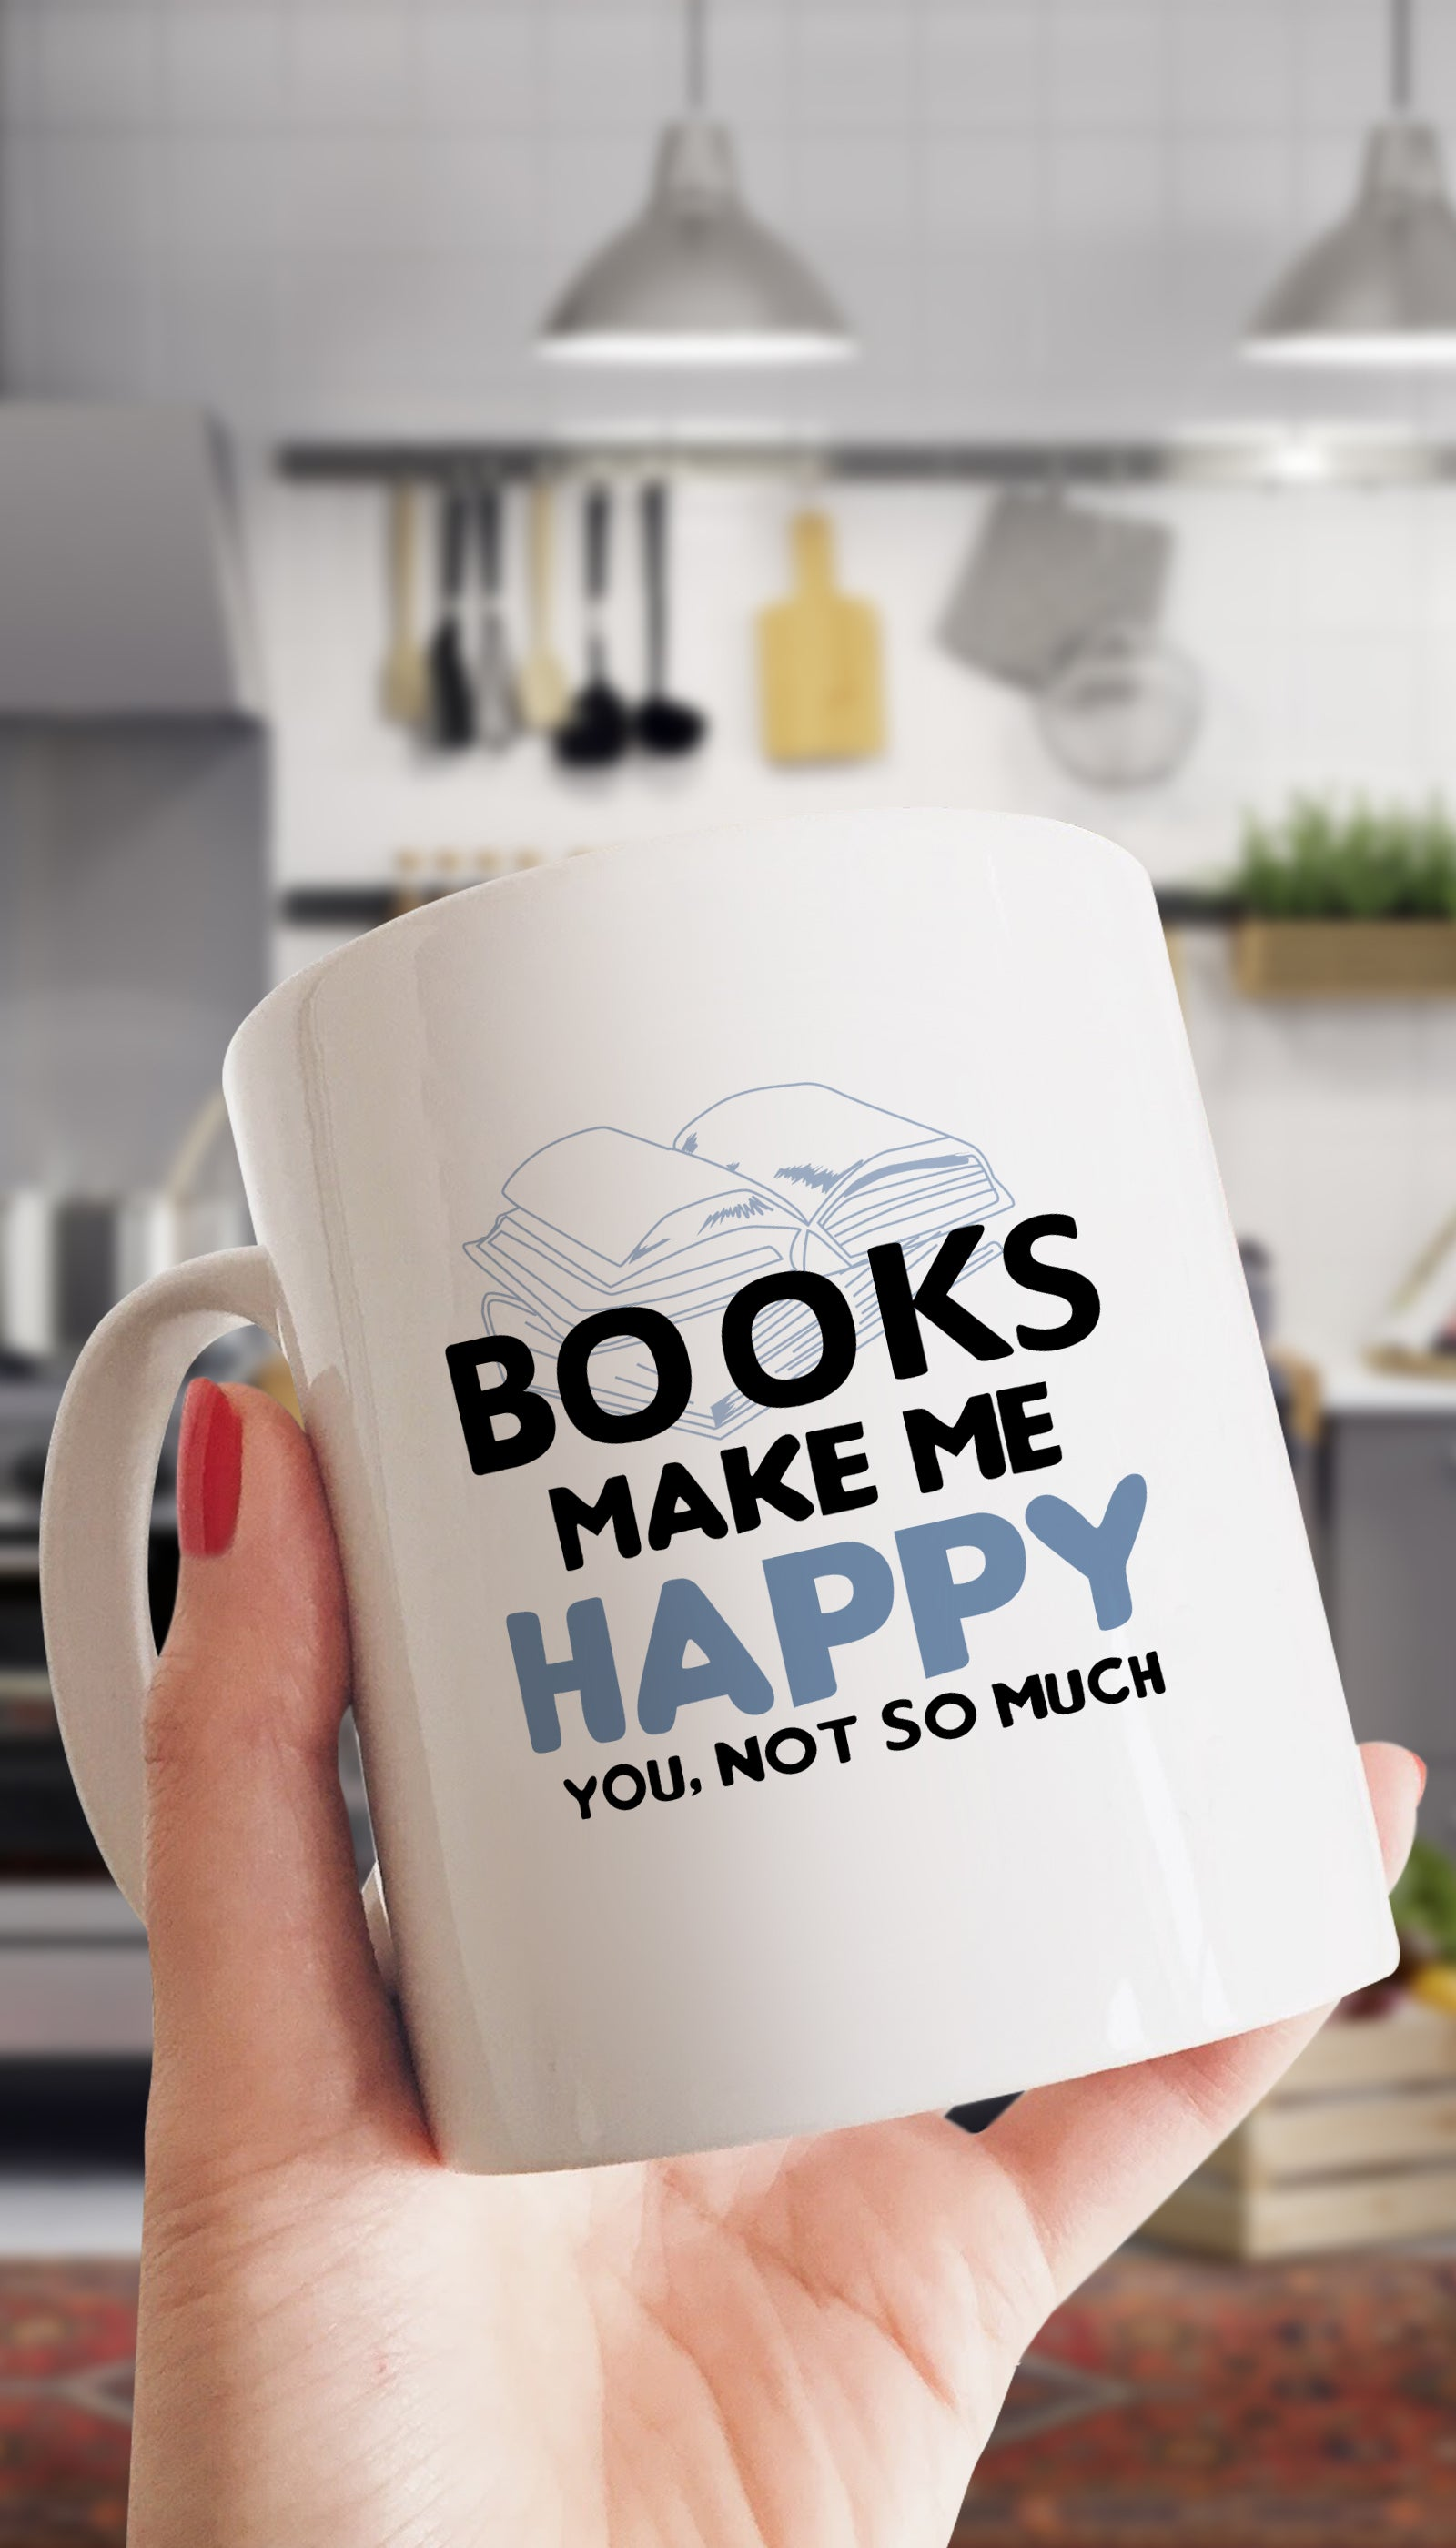 Books Make Me Happy Funny & Clever Office Coffee Mug | Sarcastic ME